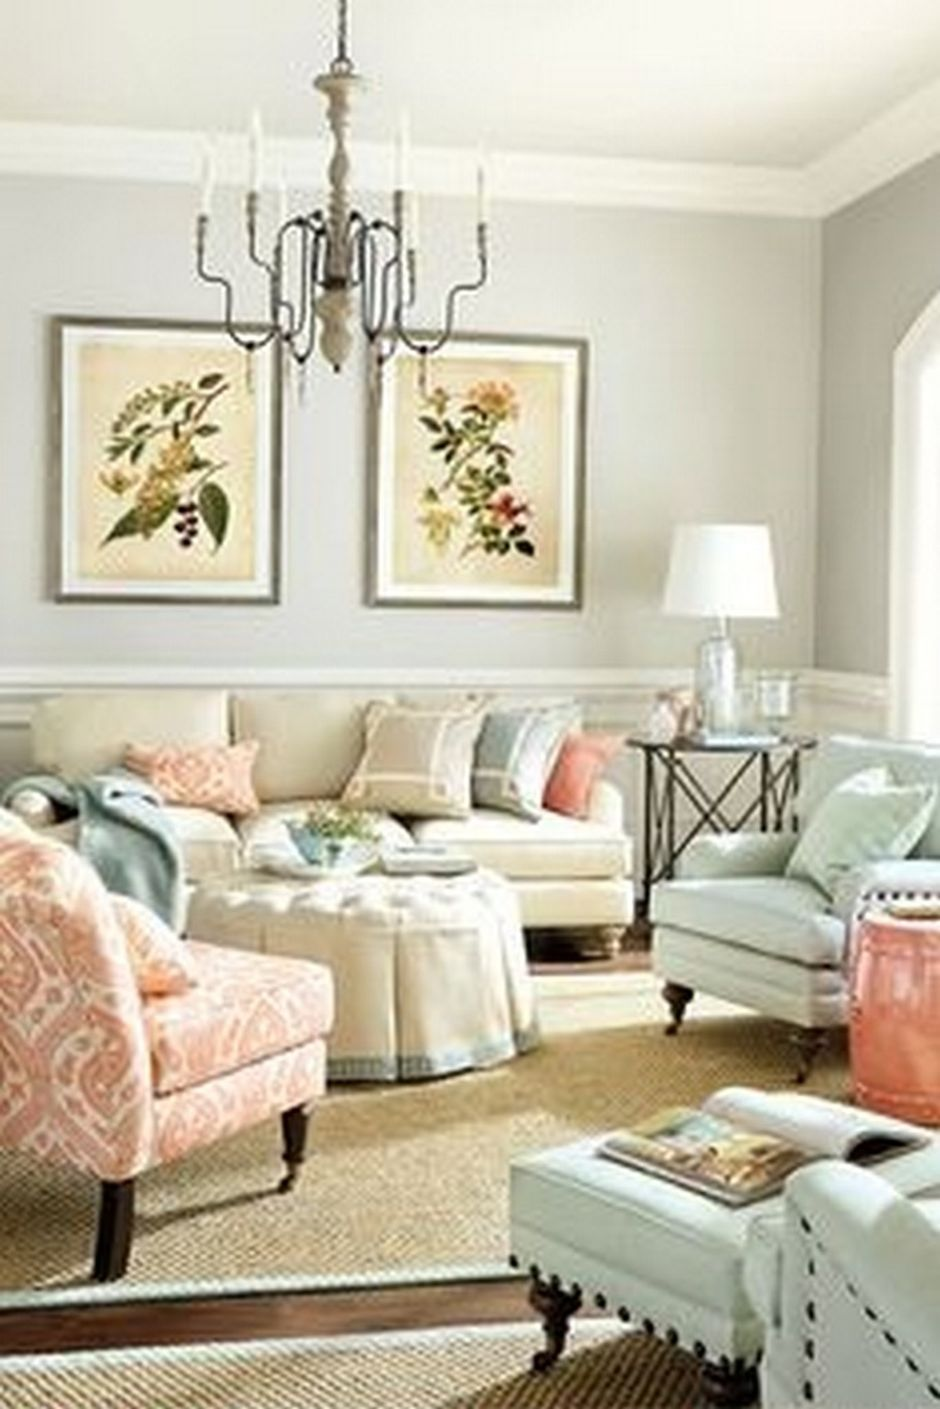 Cozy and Colorful Pastel Living Room Interior Style 2